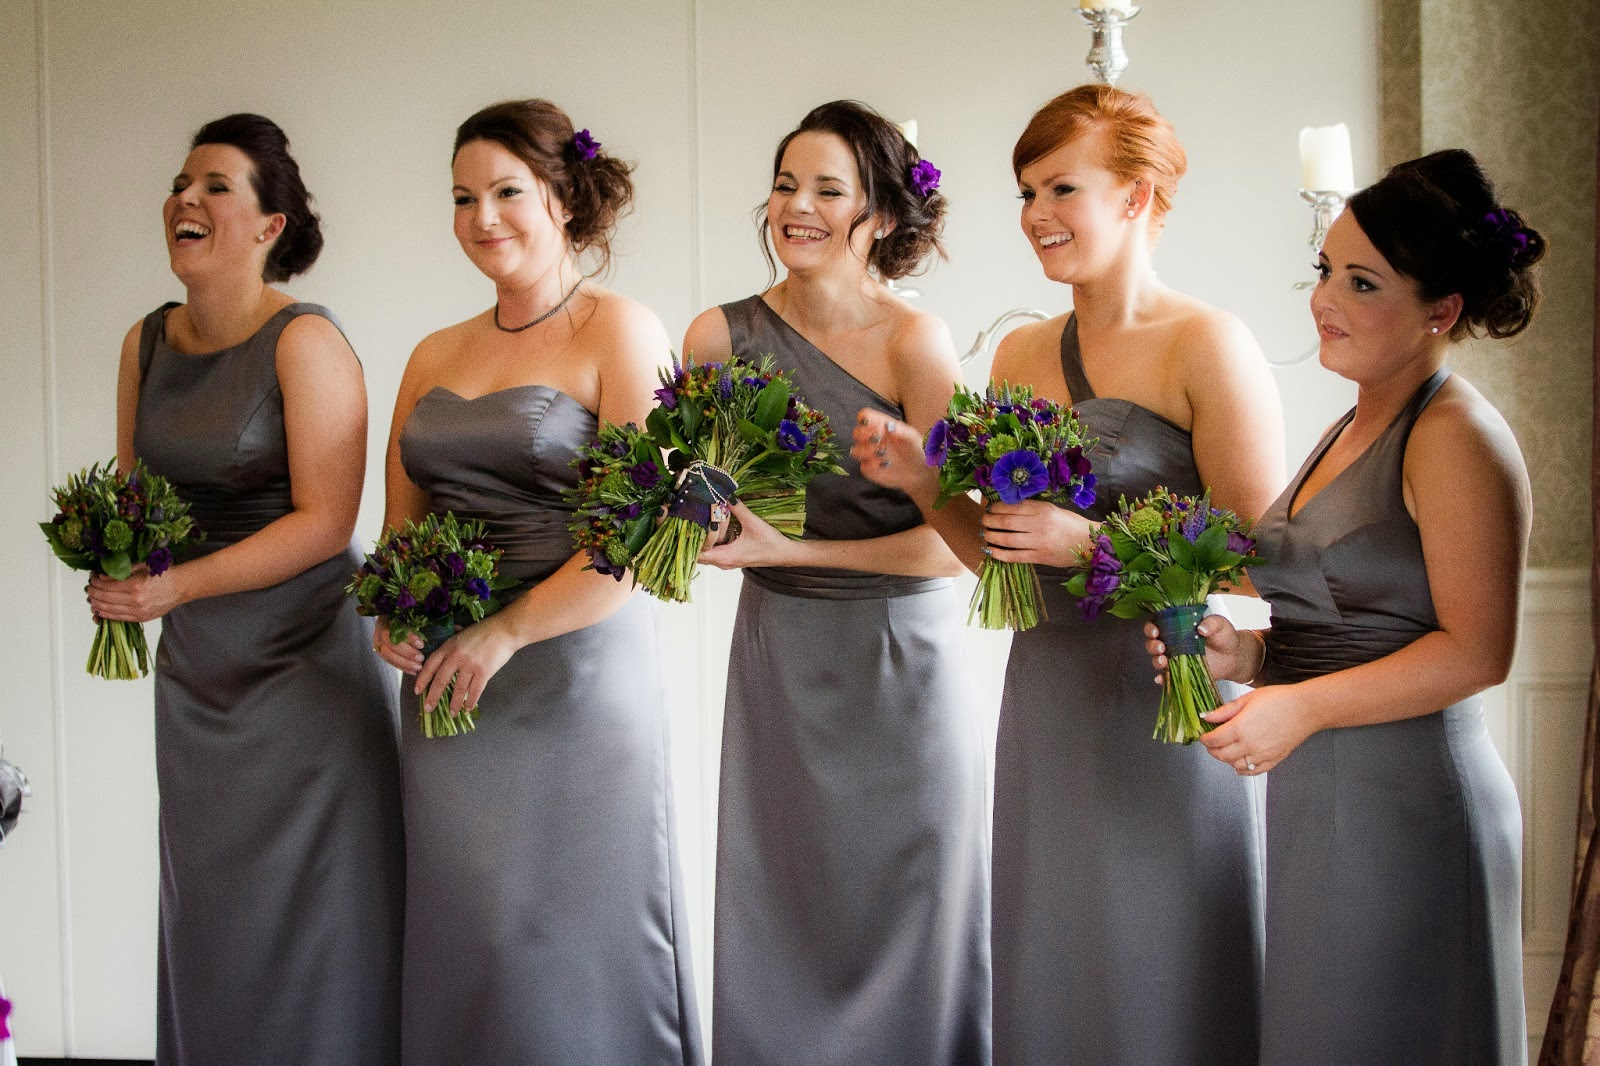 Bridesmaid dresses same fabric different styles images bridesmaid dresses same fabric different styles images bridesmaid dresses same fabric different styles choice image bridesmaid ombrellifo Images